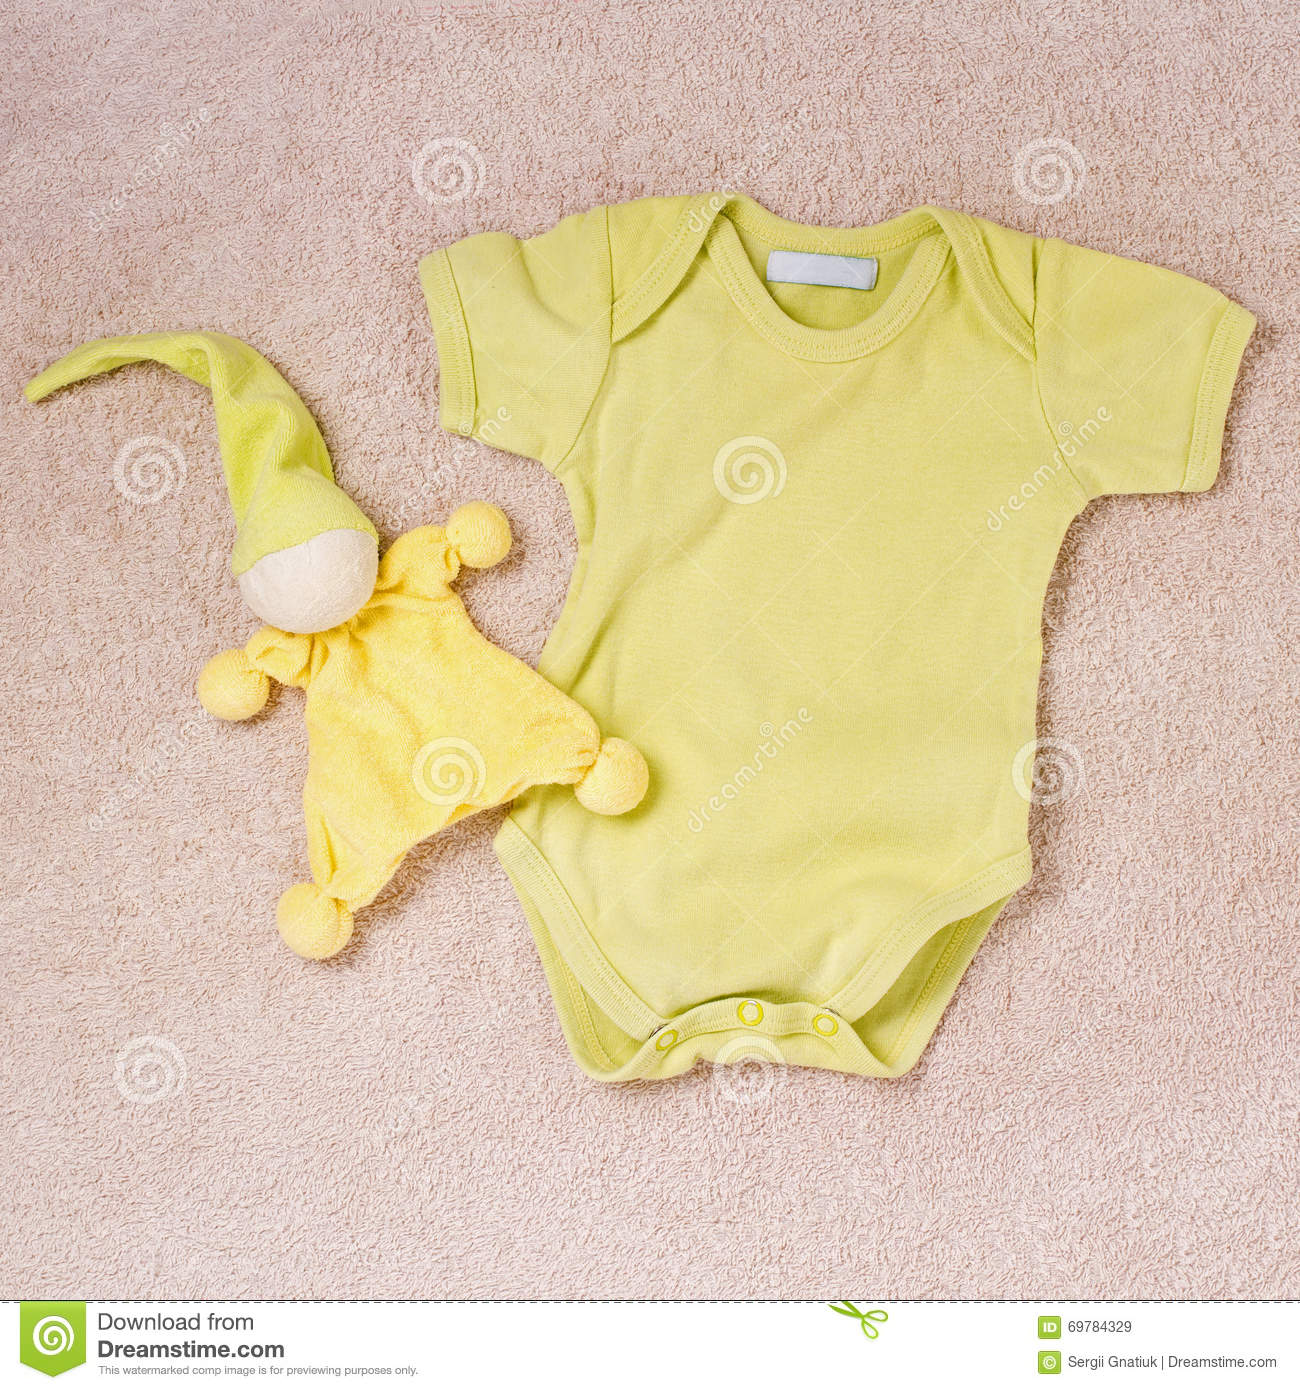 Yellow newborn button up onesie and toy clown with night hat on top of soft  pink carpeting a160711e0fd